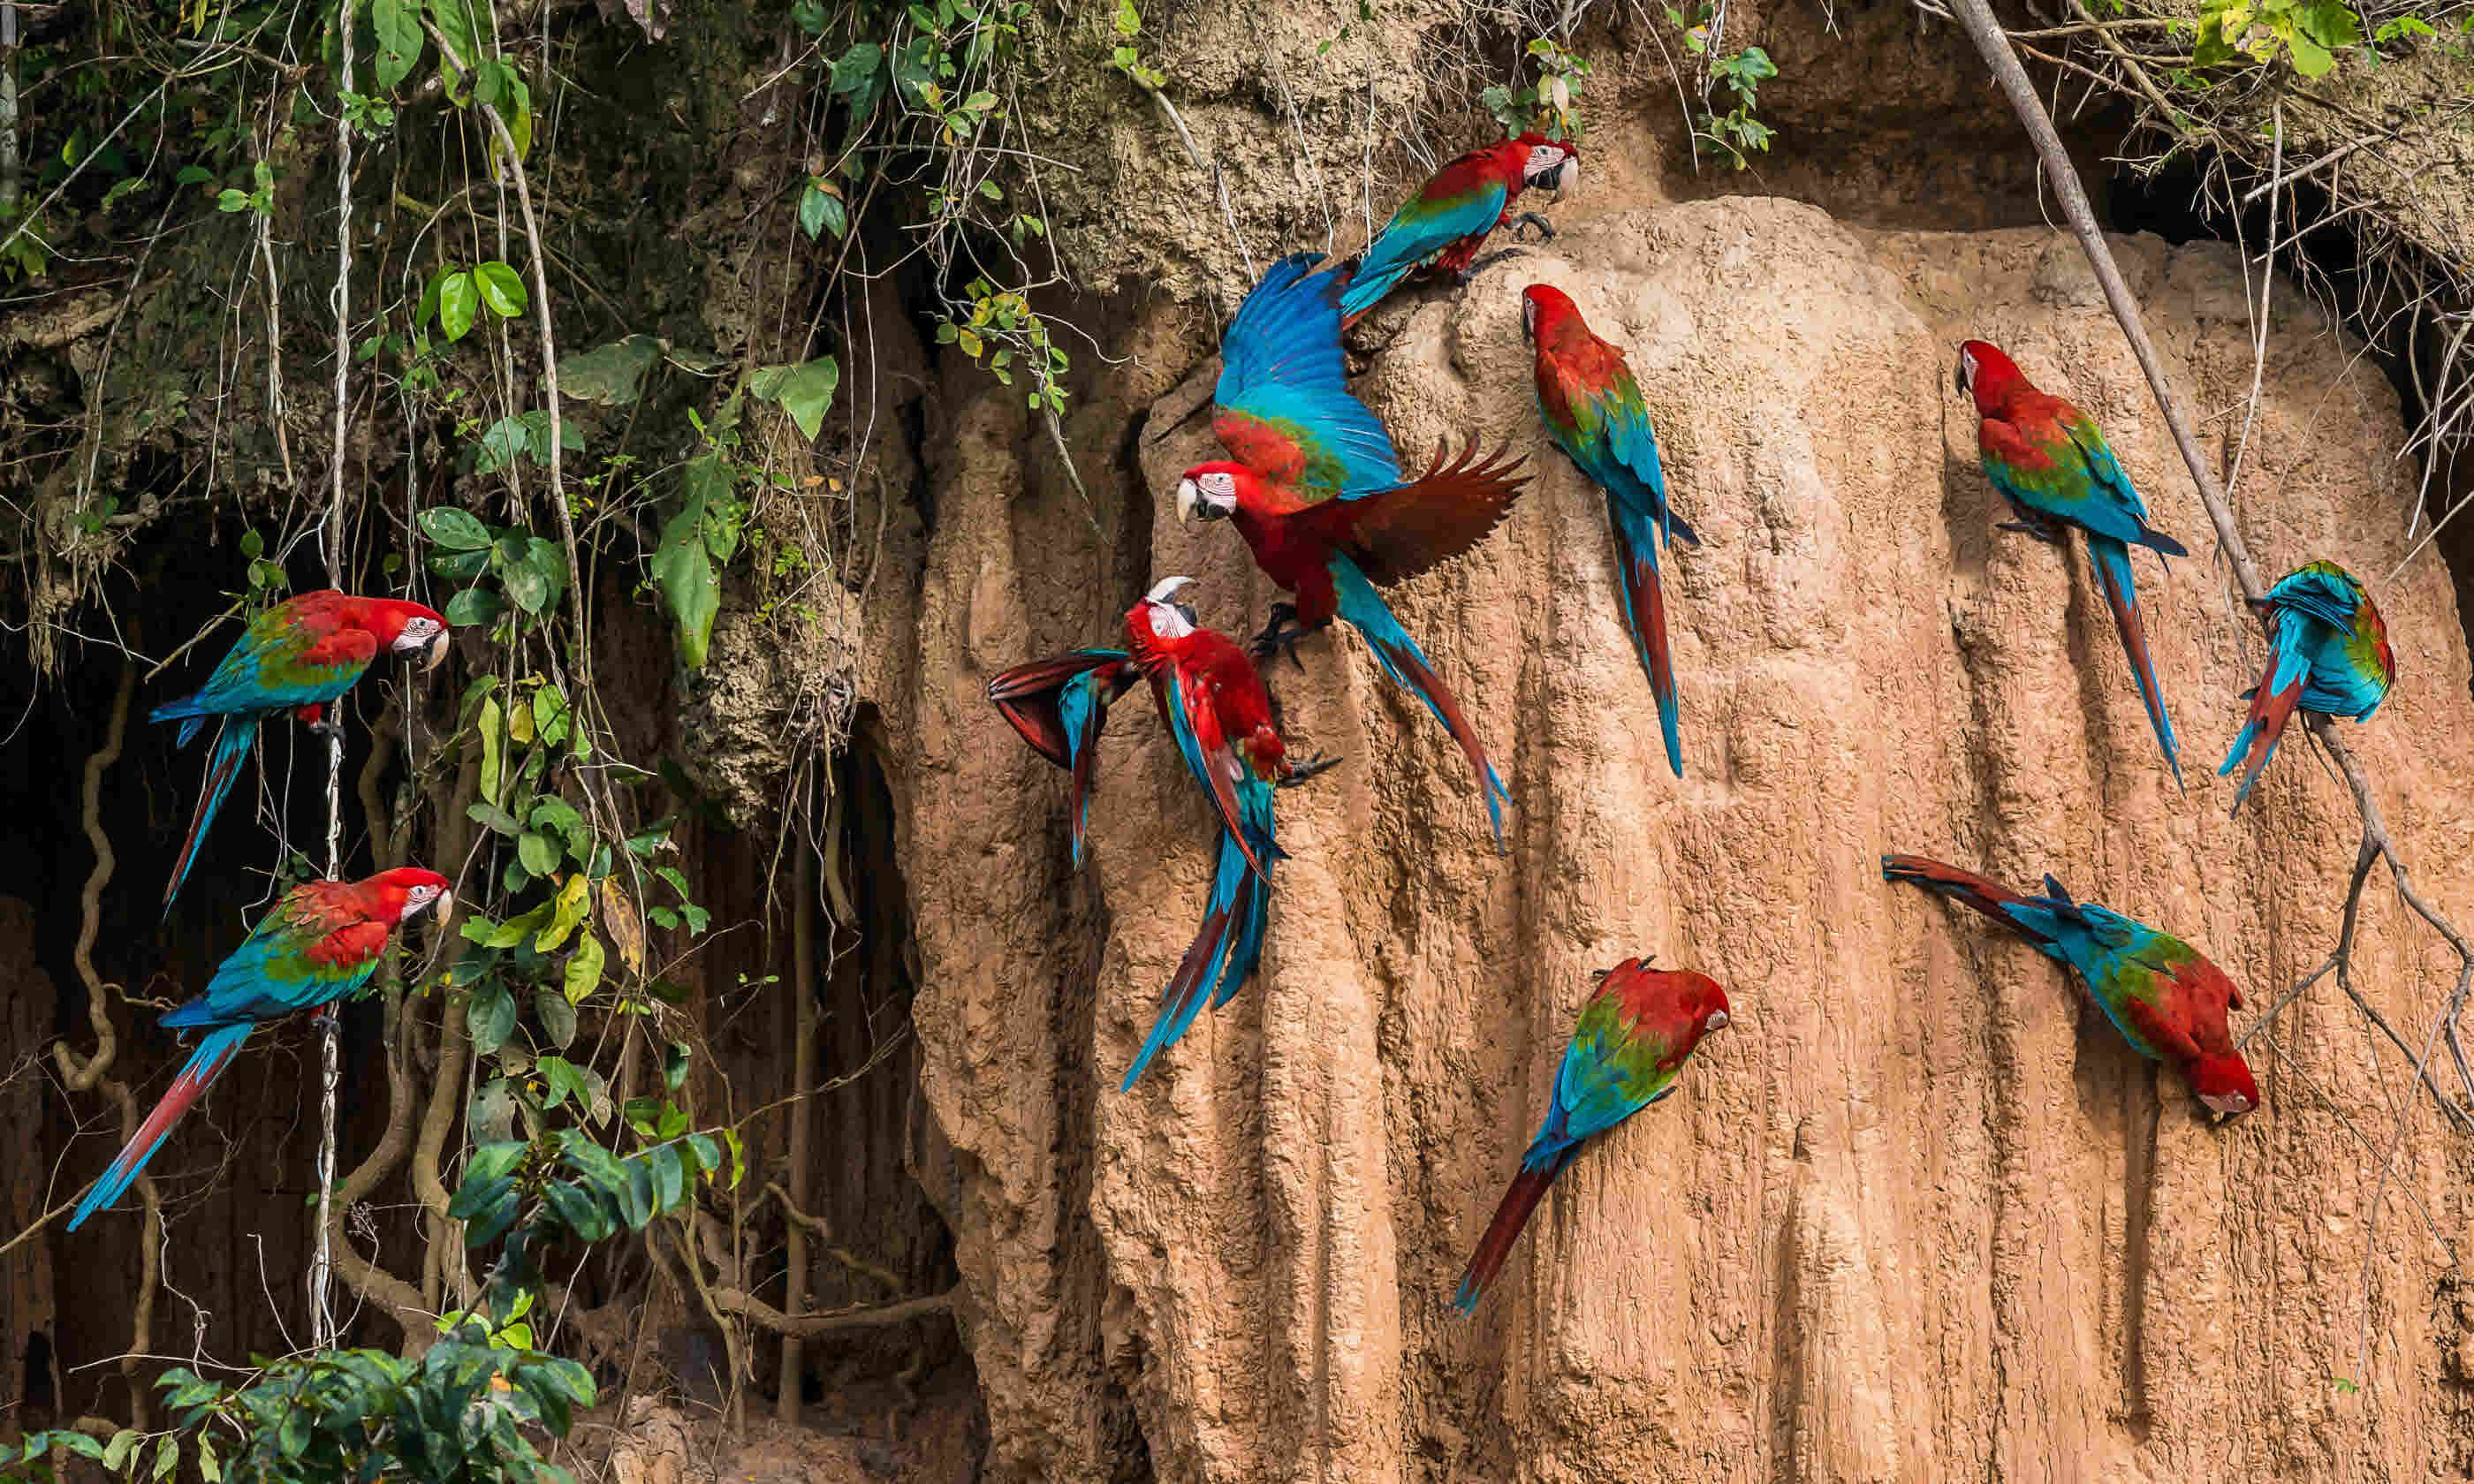 Macaws in clay lick in the peruvian Amazon jungle (Shutterstock)